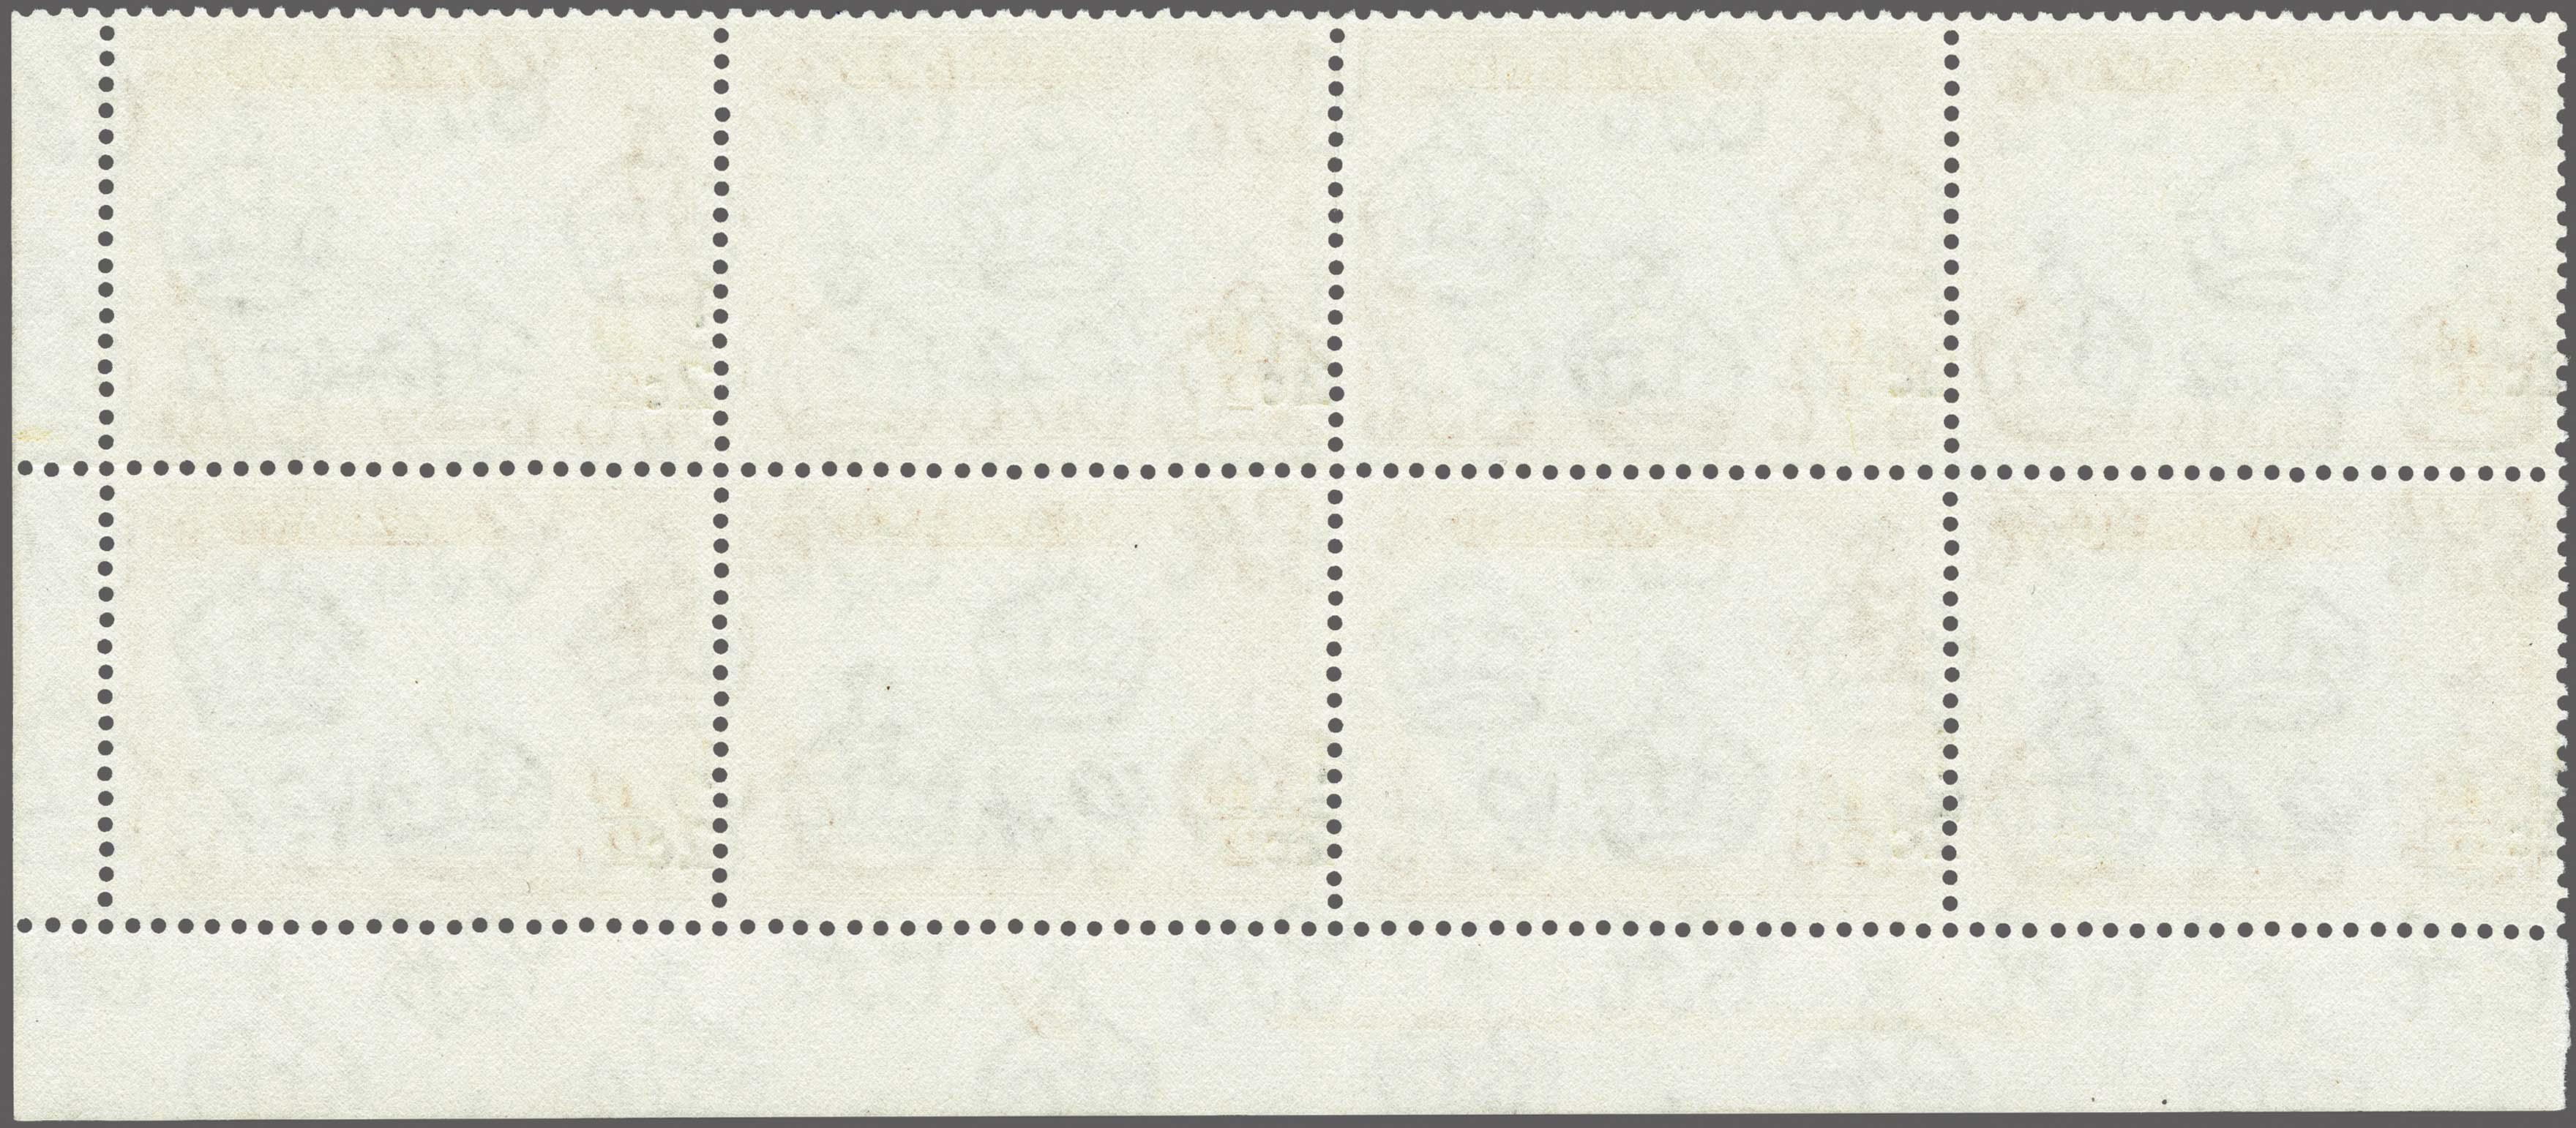 Lot 175 - Great Britain and former colonies swaziland -  Corinphila Veilingen Auction 250-253 - Day 1 - Foreign countries